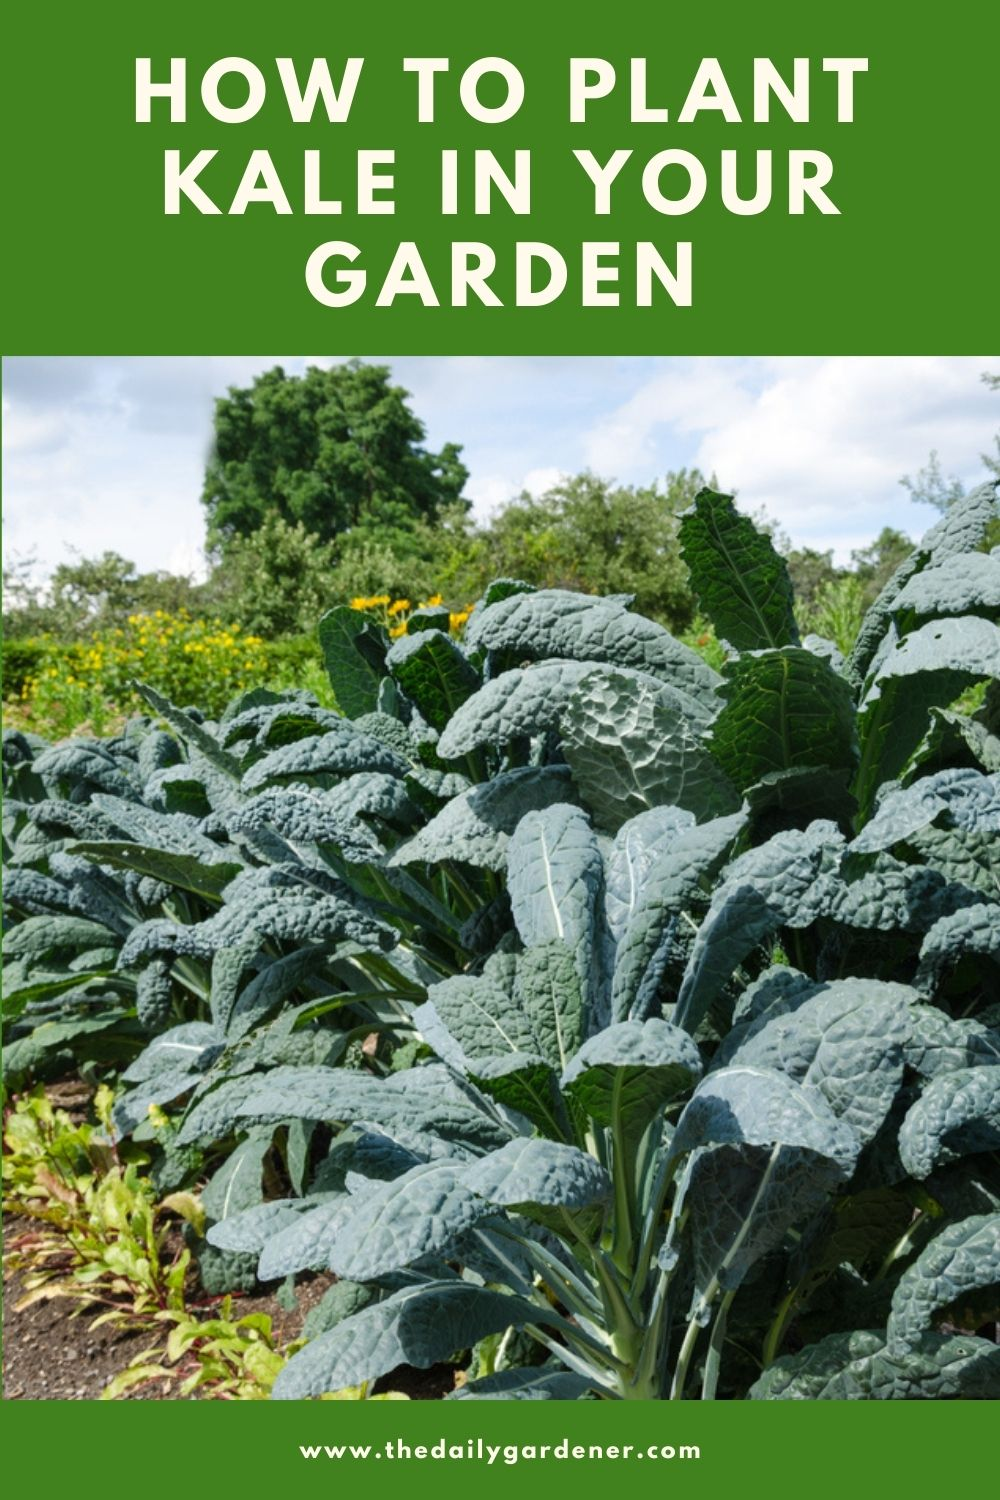 How to Plant Kale in Your Garden (Tricks to Care!) 1